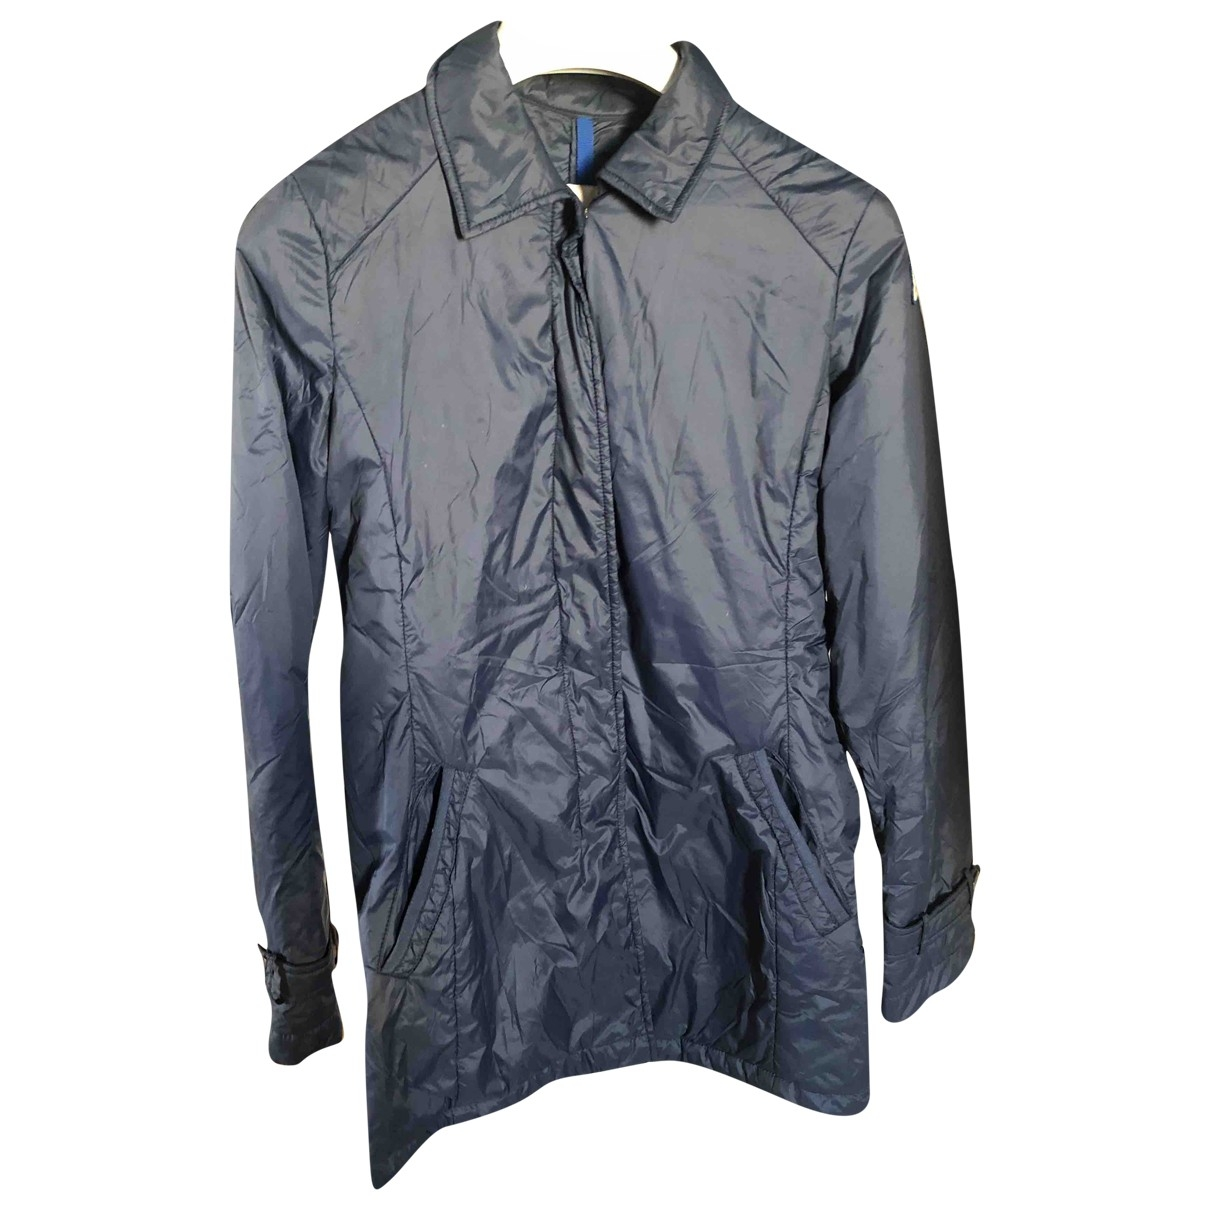 Invicta \N Blue jacket for Women S International